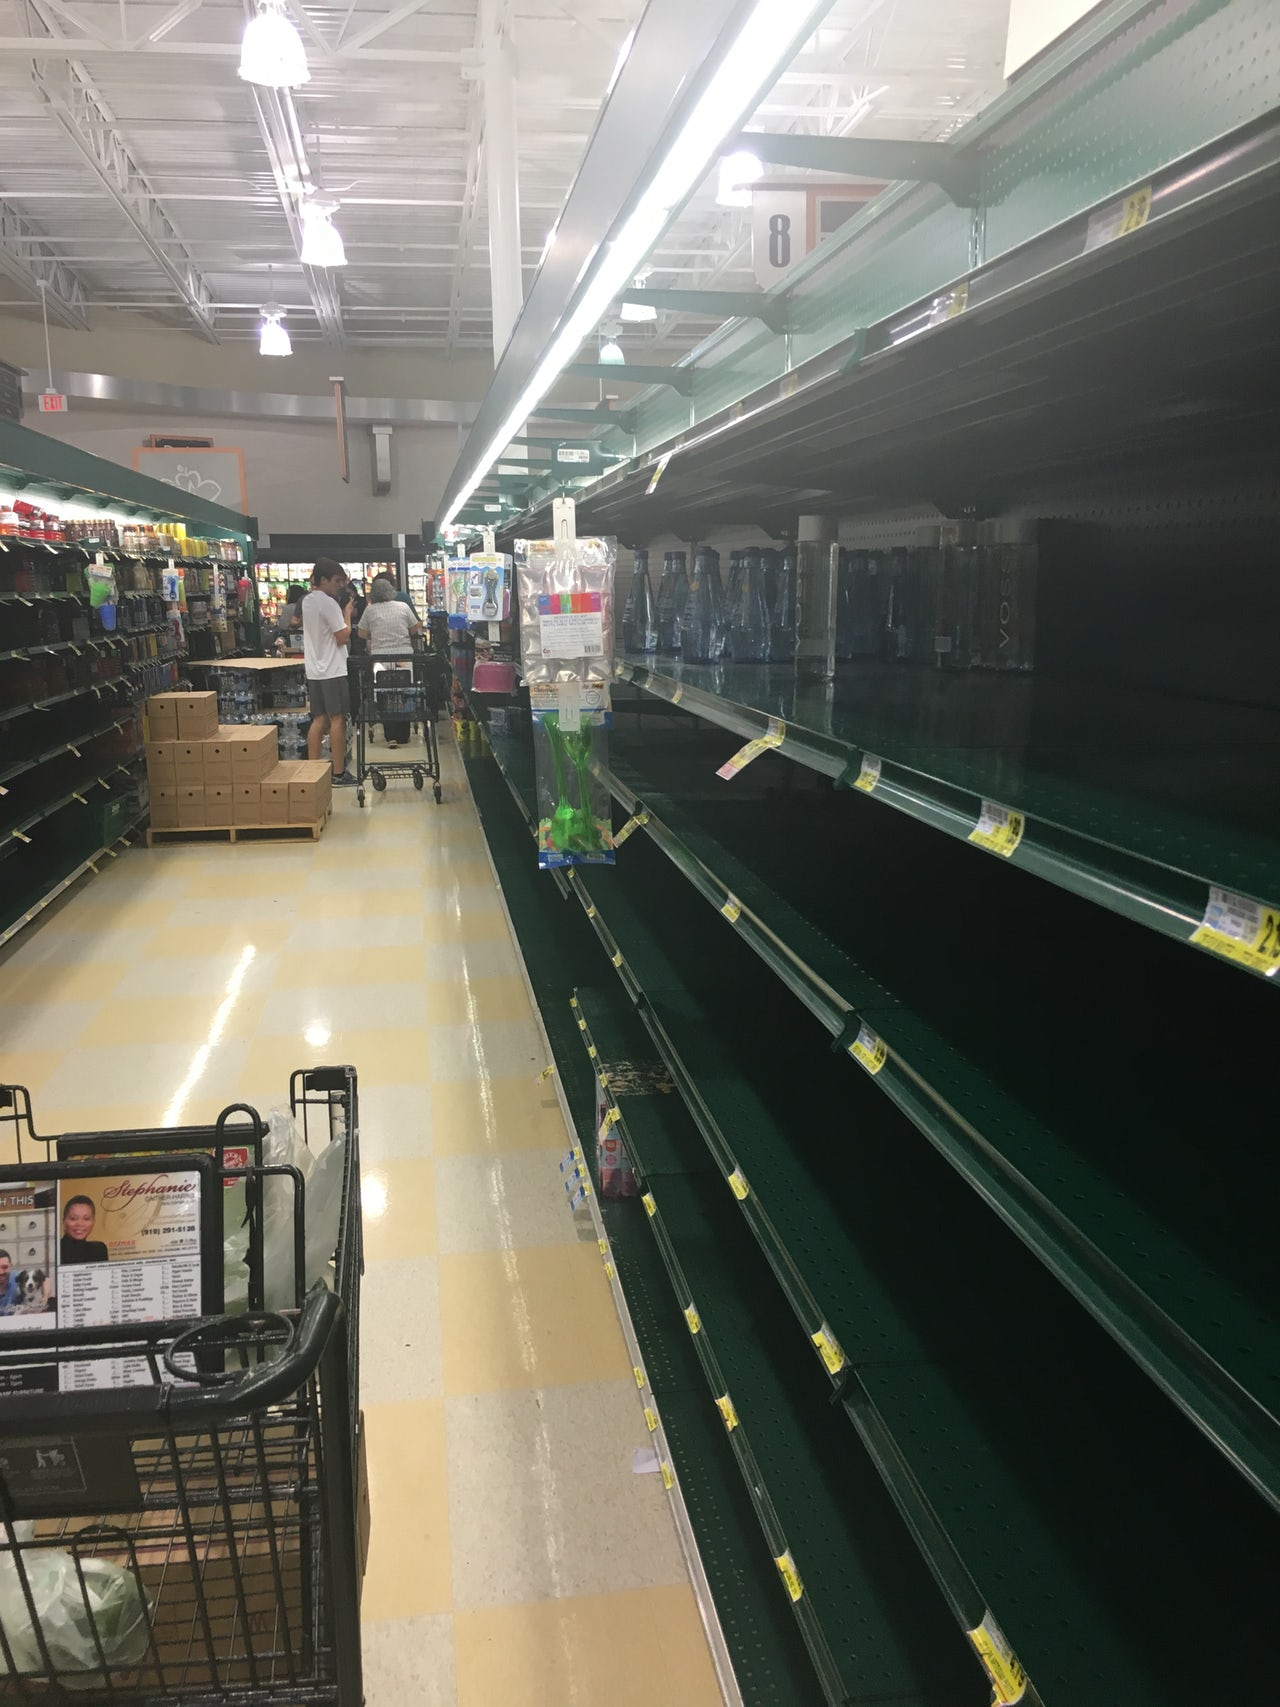 The water aisle in a Durham, North Carolina Harris Teeter grocery store.